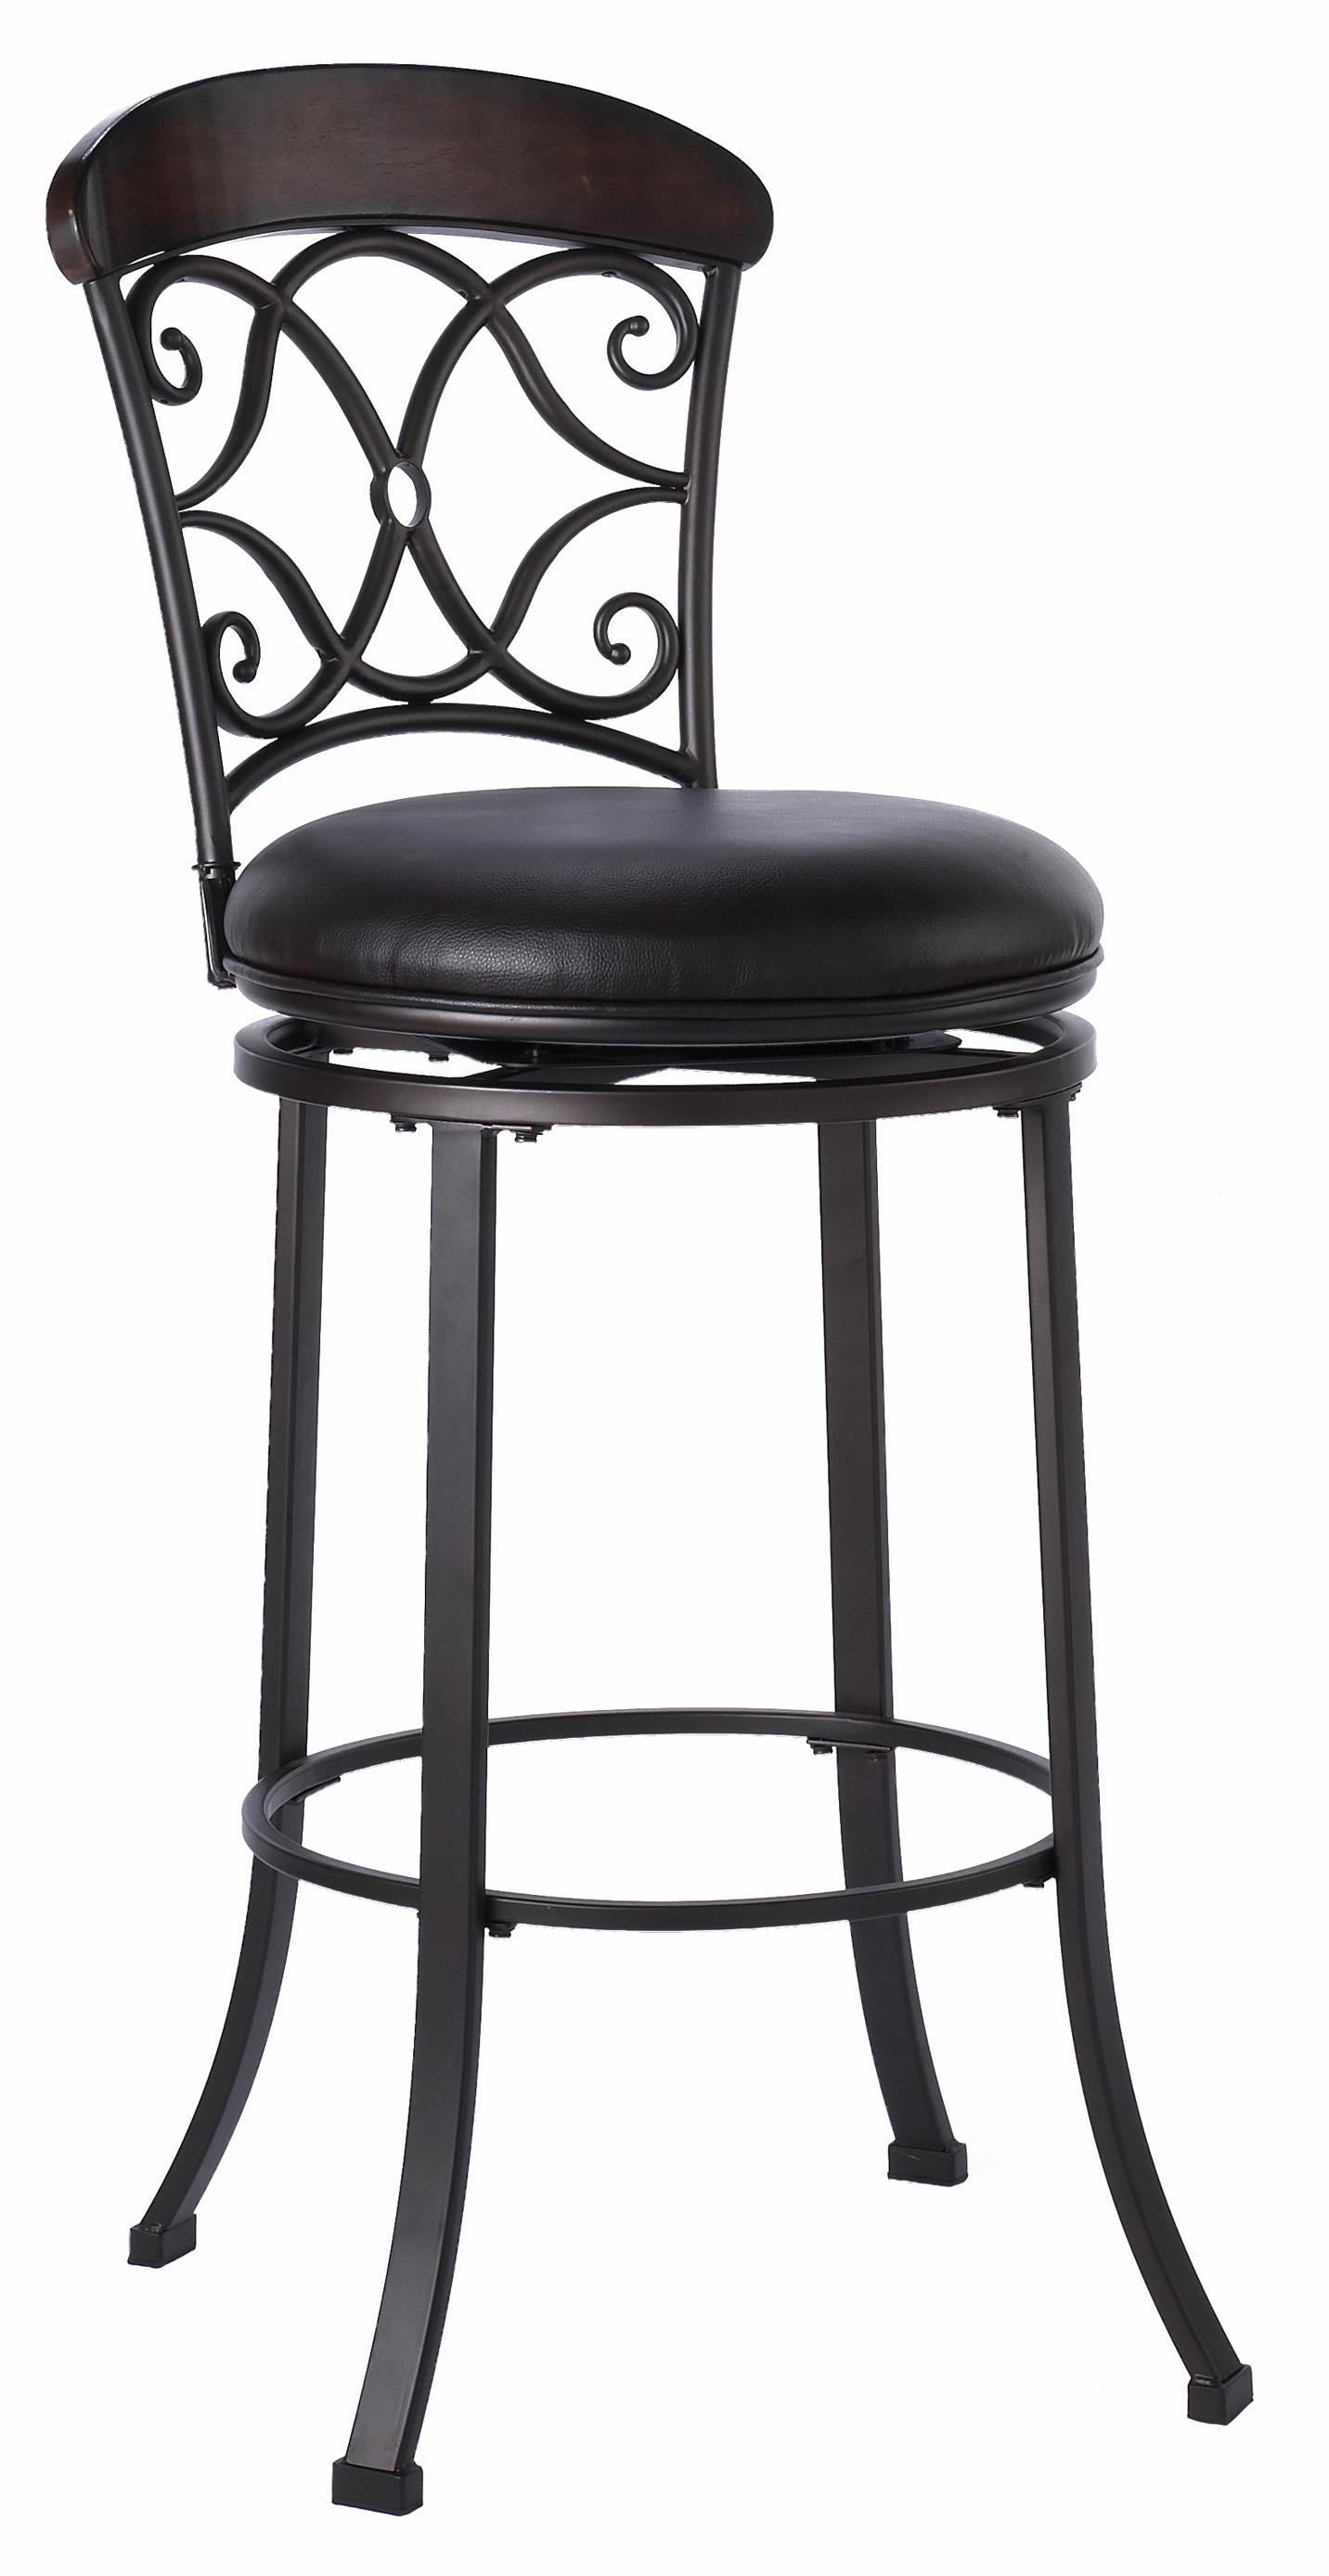 Stools Counter Height Swivel Stool by Hillsdale at Crowley Furniture & Mattress